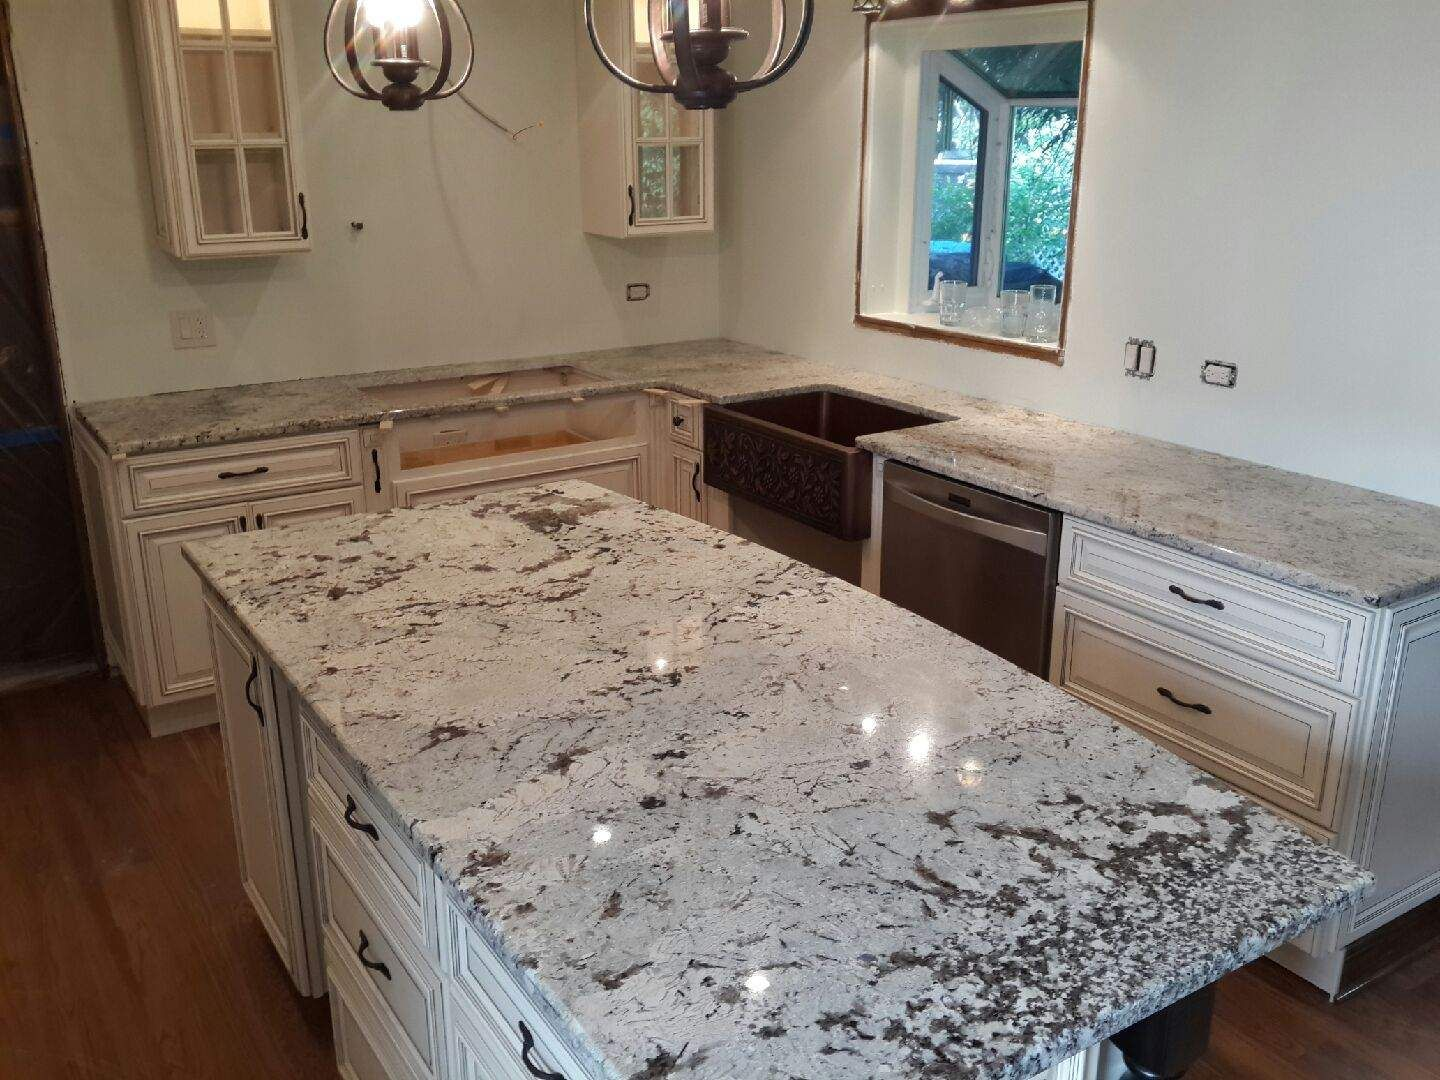 Jupara Delicatus Granite Countertops Skokie Il Granite And Quartz Instalations Chicago Area